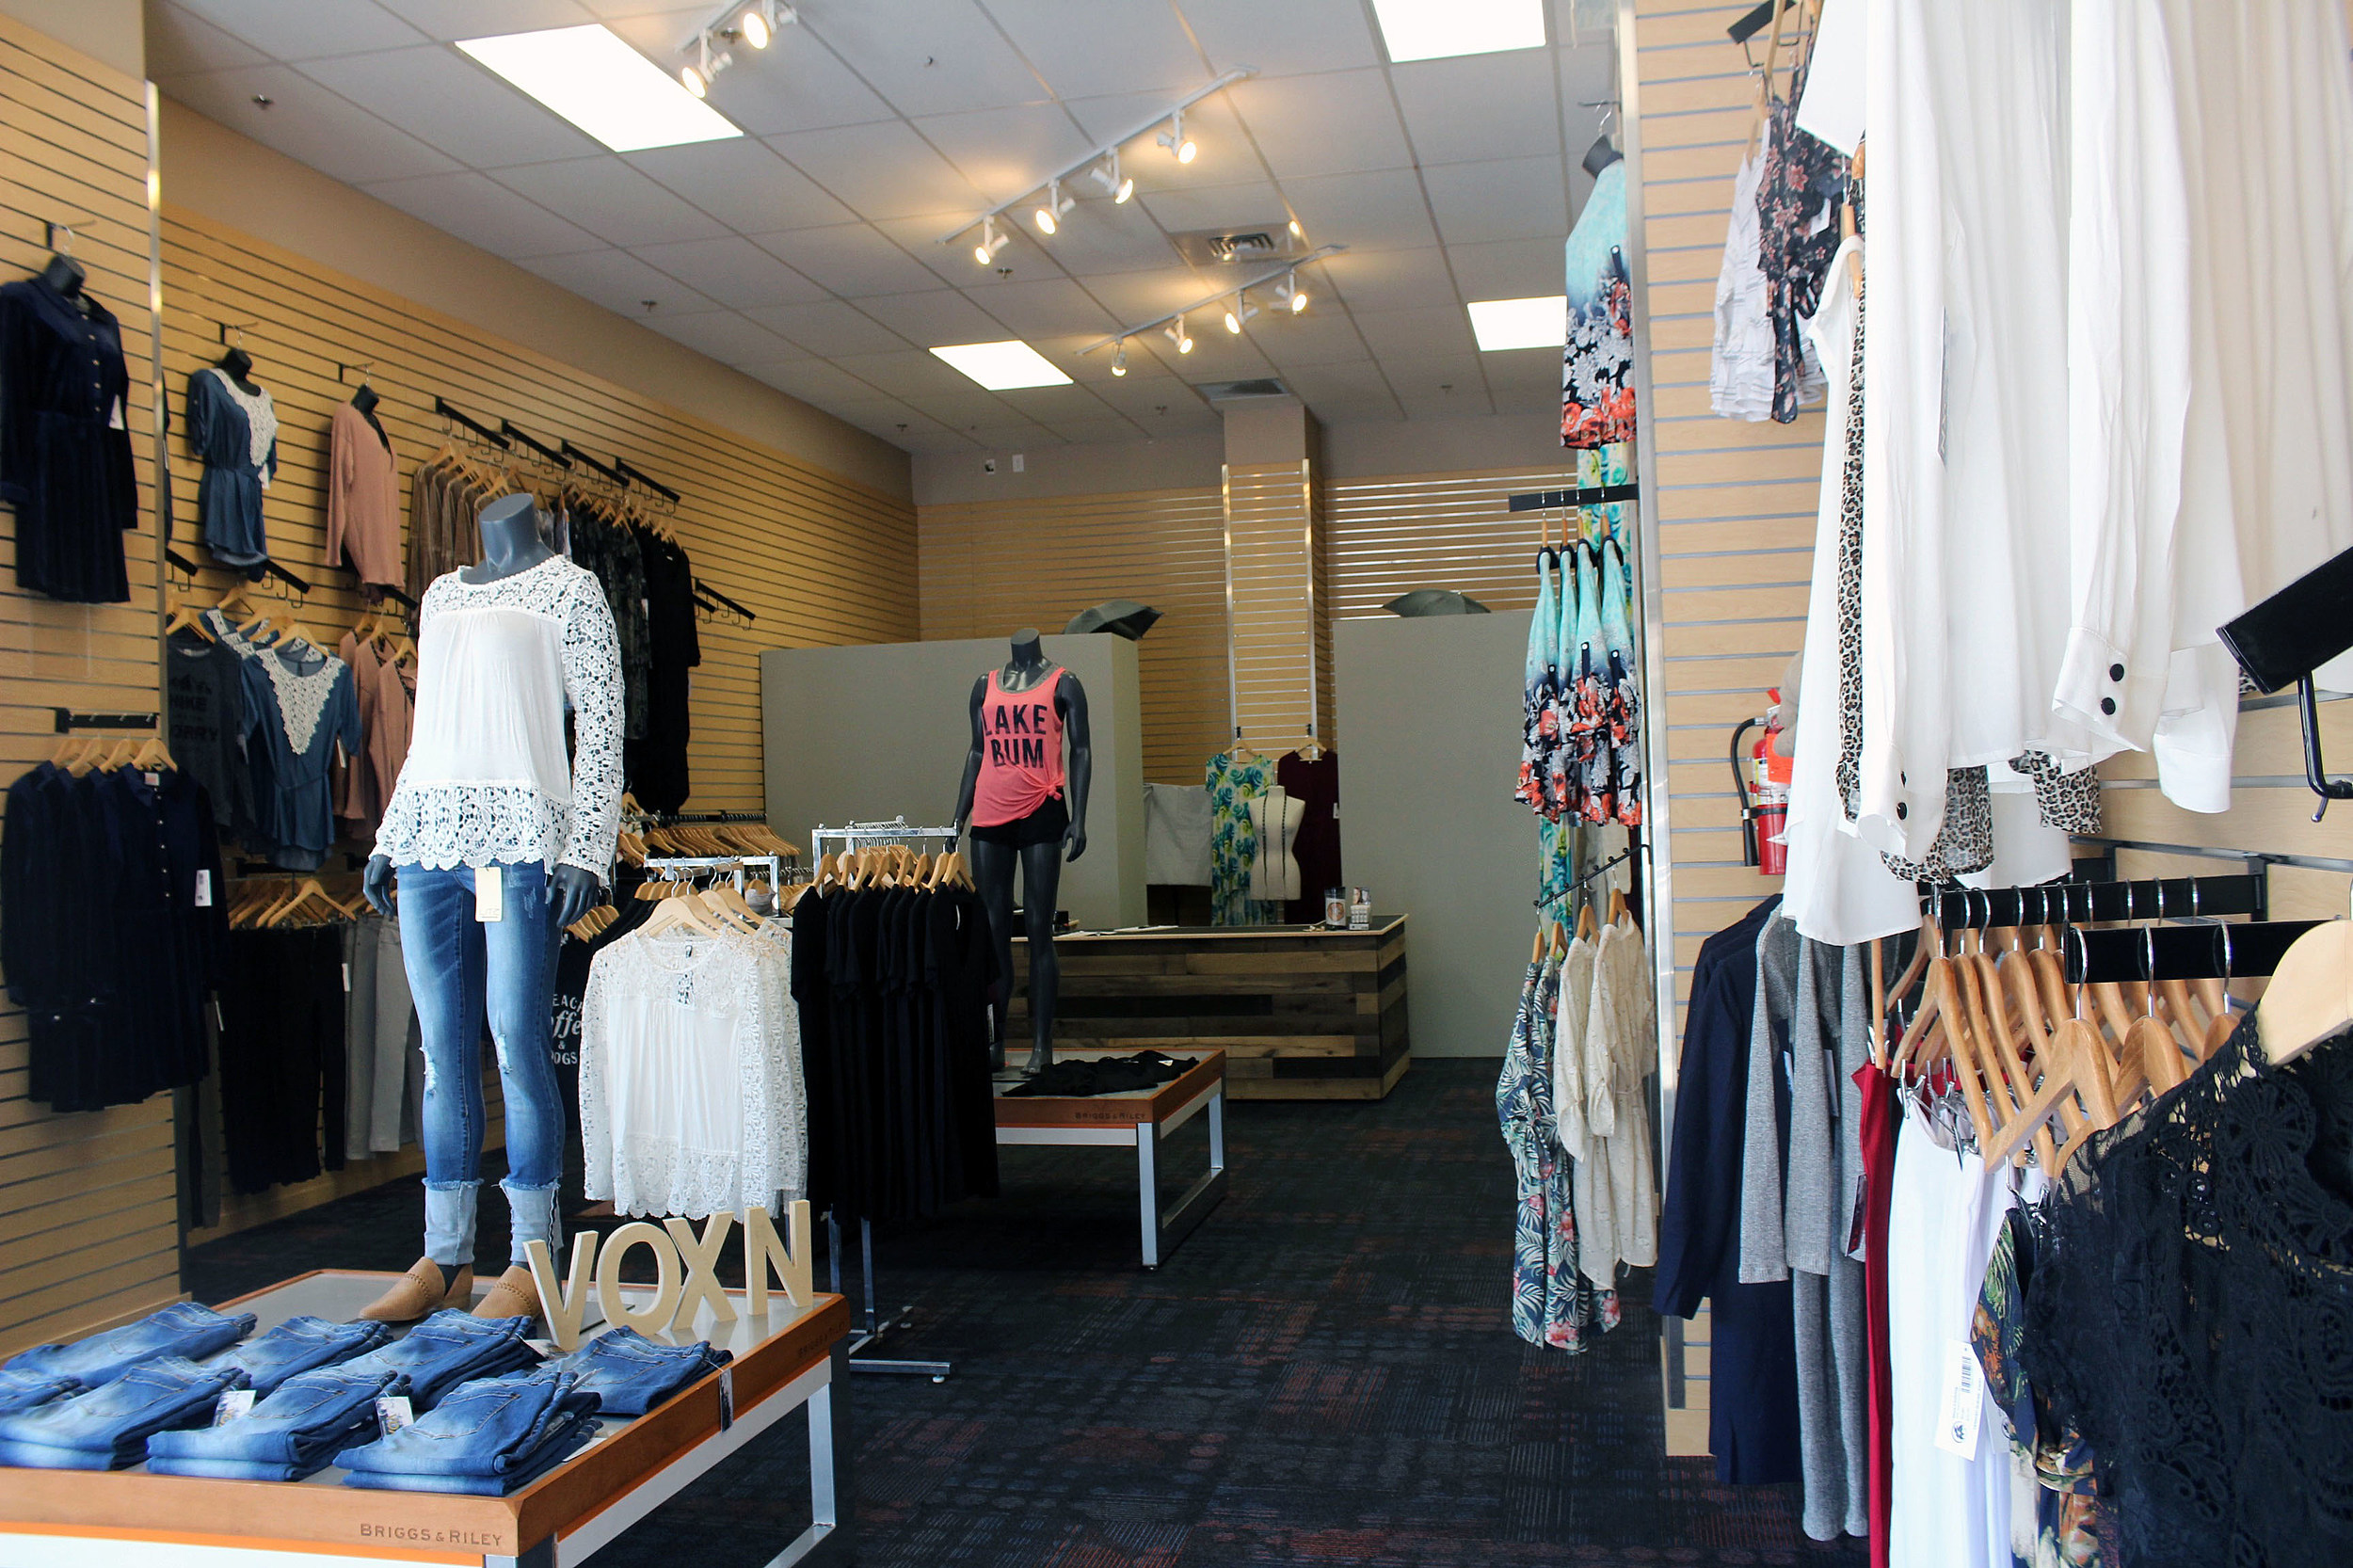 Ava Rae Boutique is an online women's clothing boutique, based in Boise, ID. Ava Rae Boutique offers fast fashion styles that are perfect for the working women, stay at home moms and every women in between. Here at Ava Rae Boutique, we believe looking fabulous doesn't need to empty your wallet!